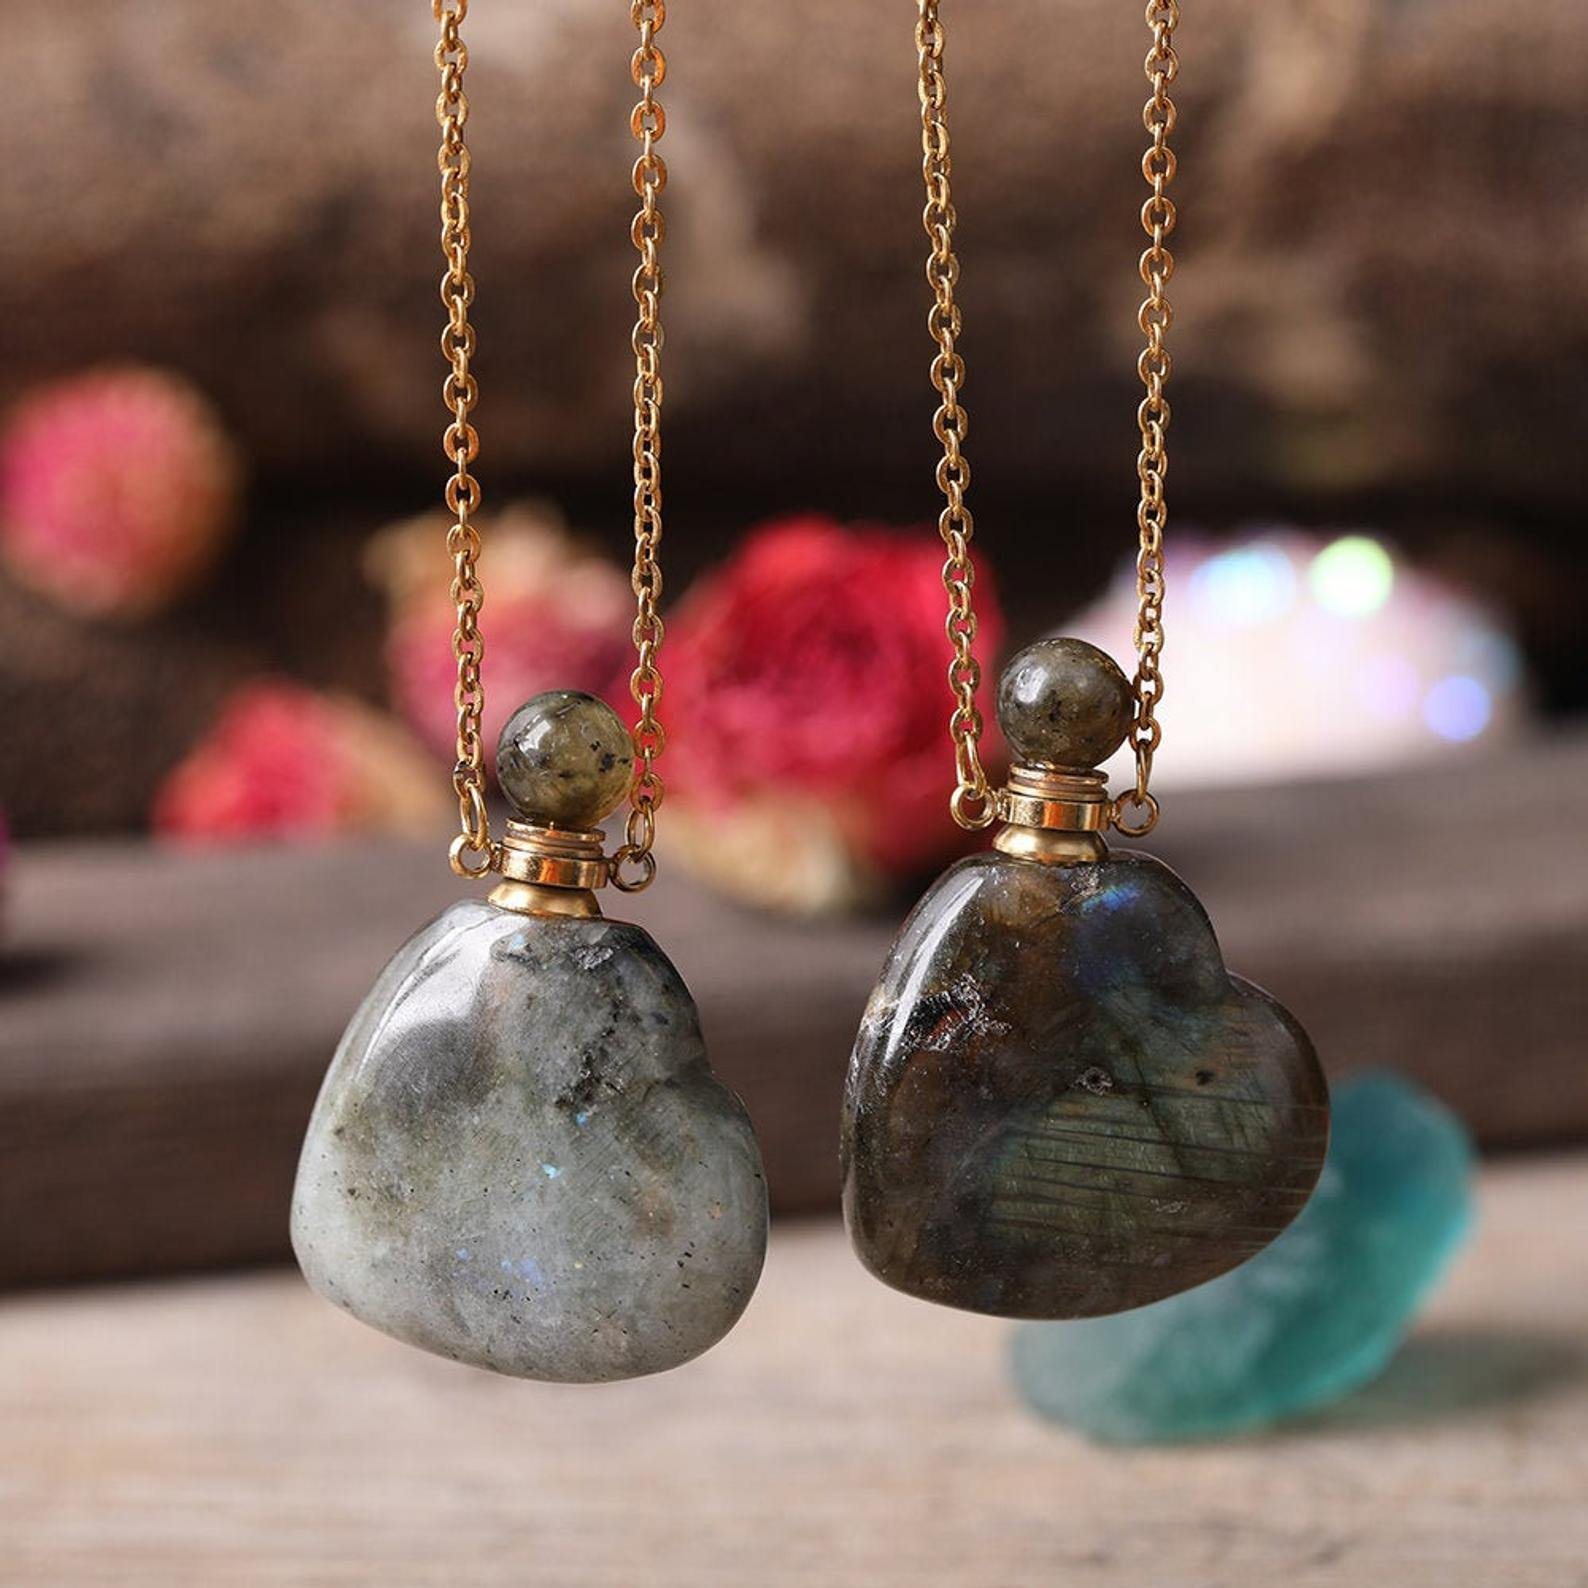 Labradorite Heart Crystal Potion Necklace (with dropper) - Throat Chakra - Life Gardening Tools LLC